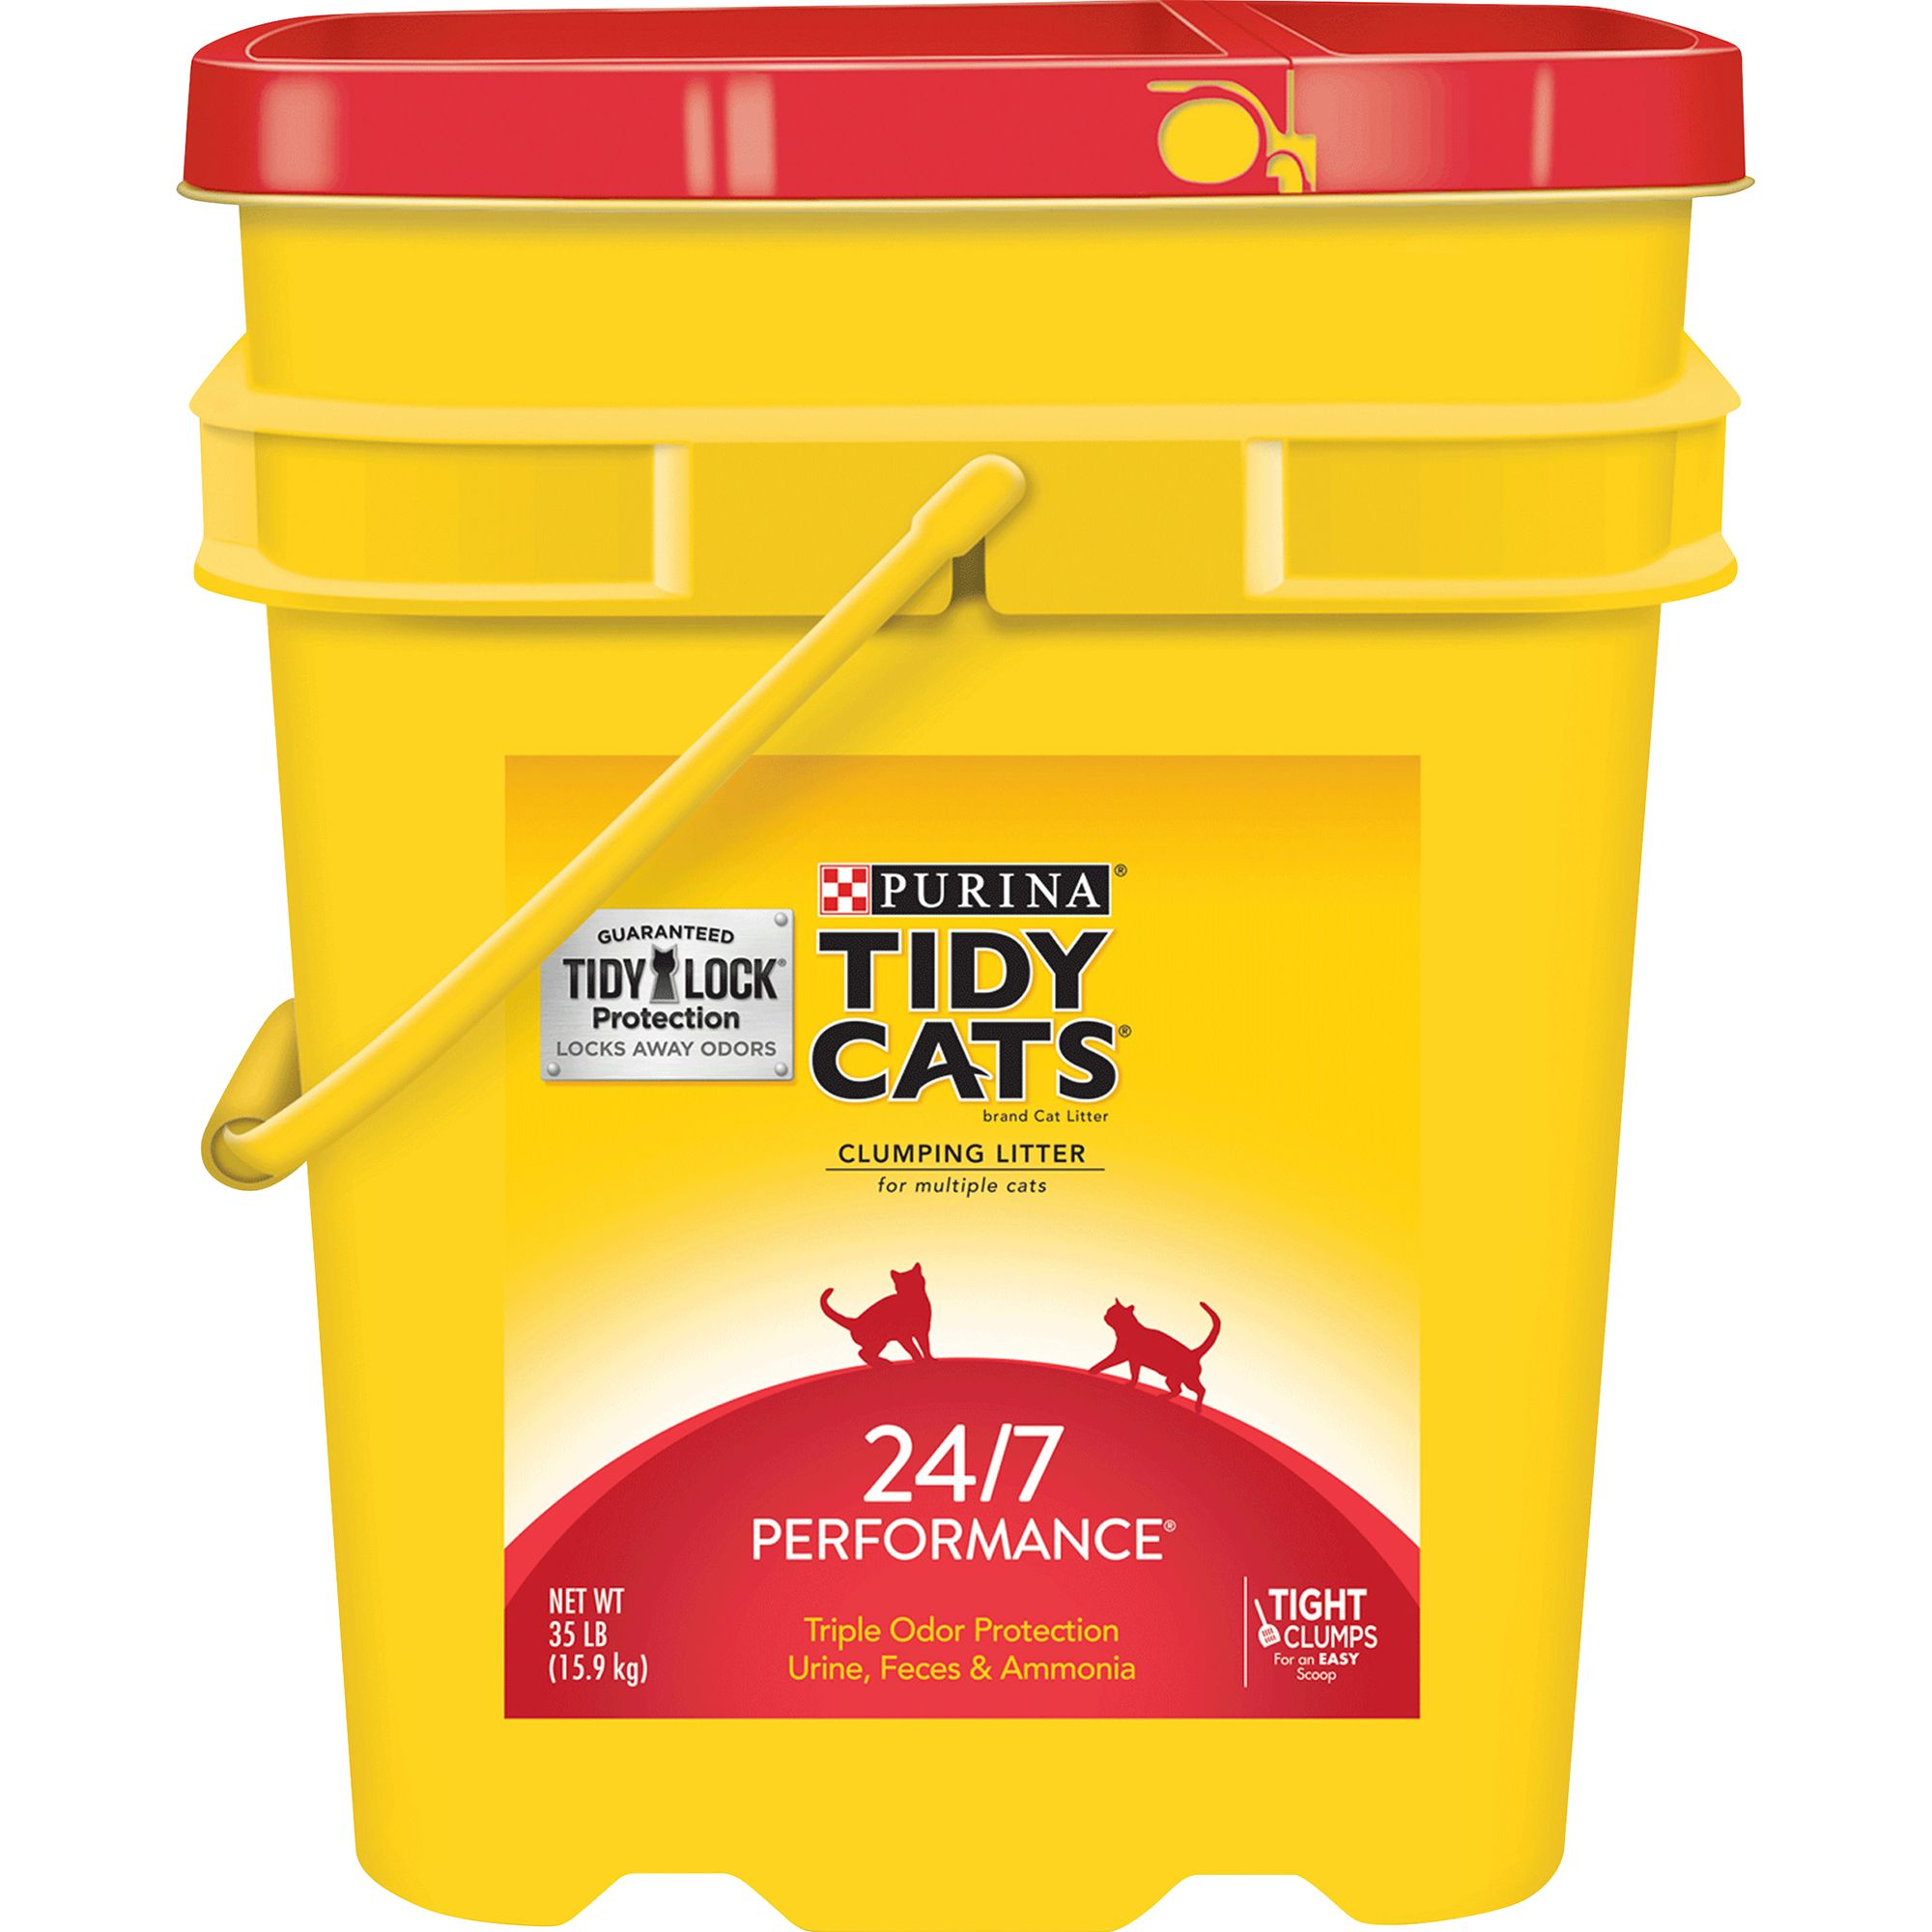 Purina Tidy Cats 24/7 Performance Cat Litter Clumping Multi Cat Size 35 Lb